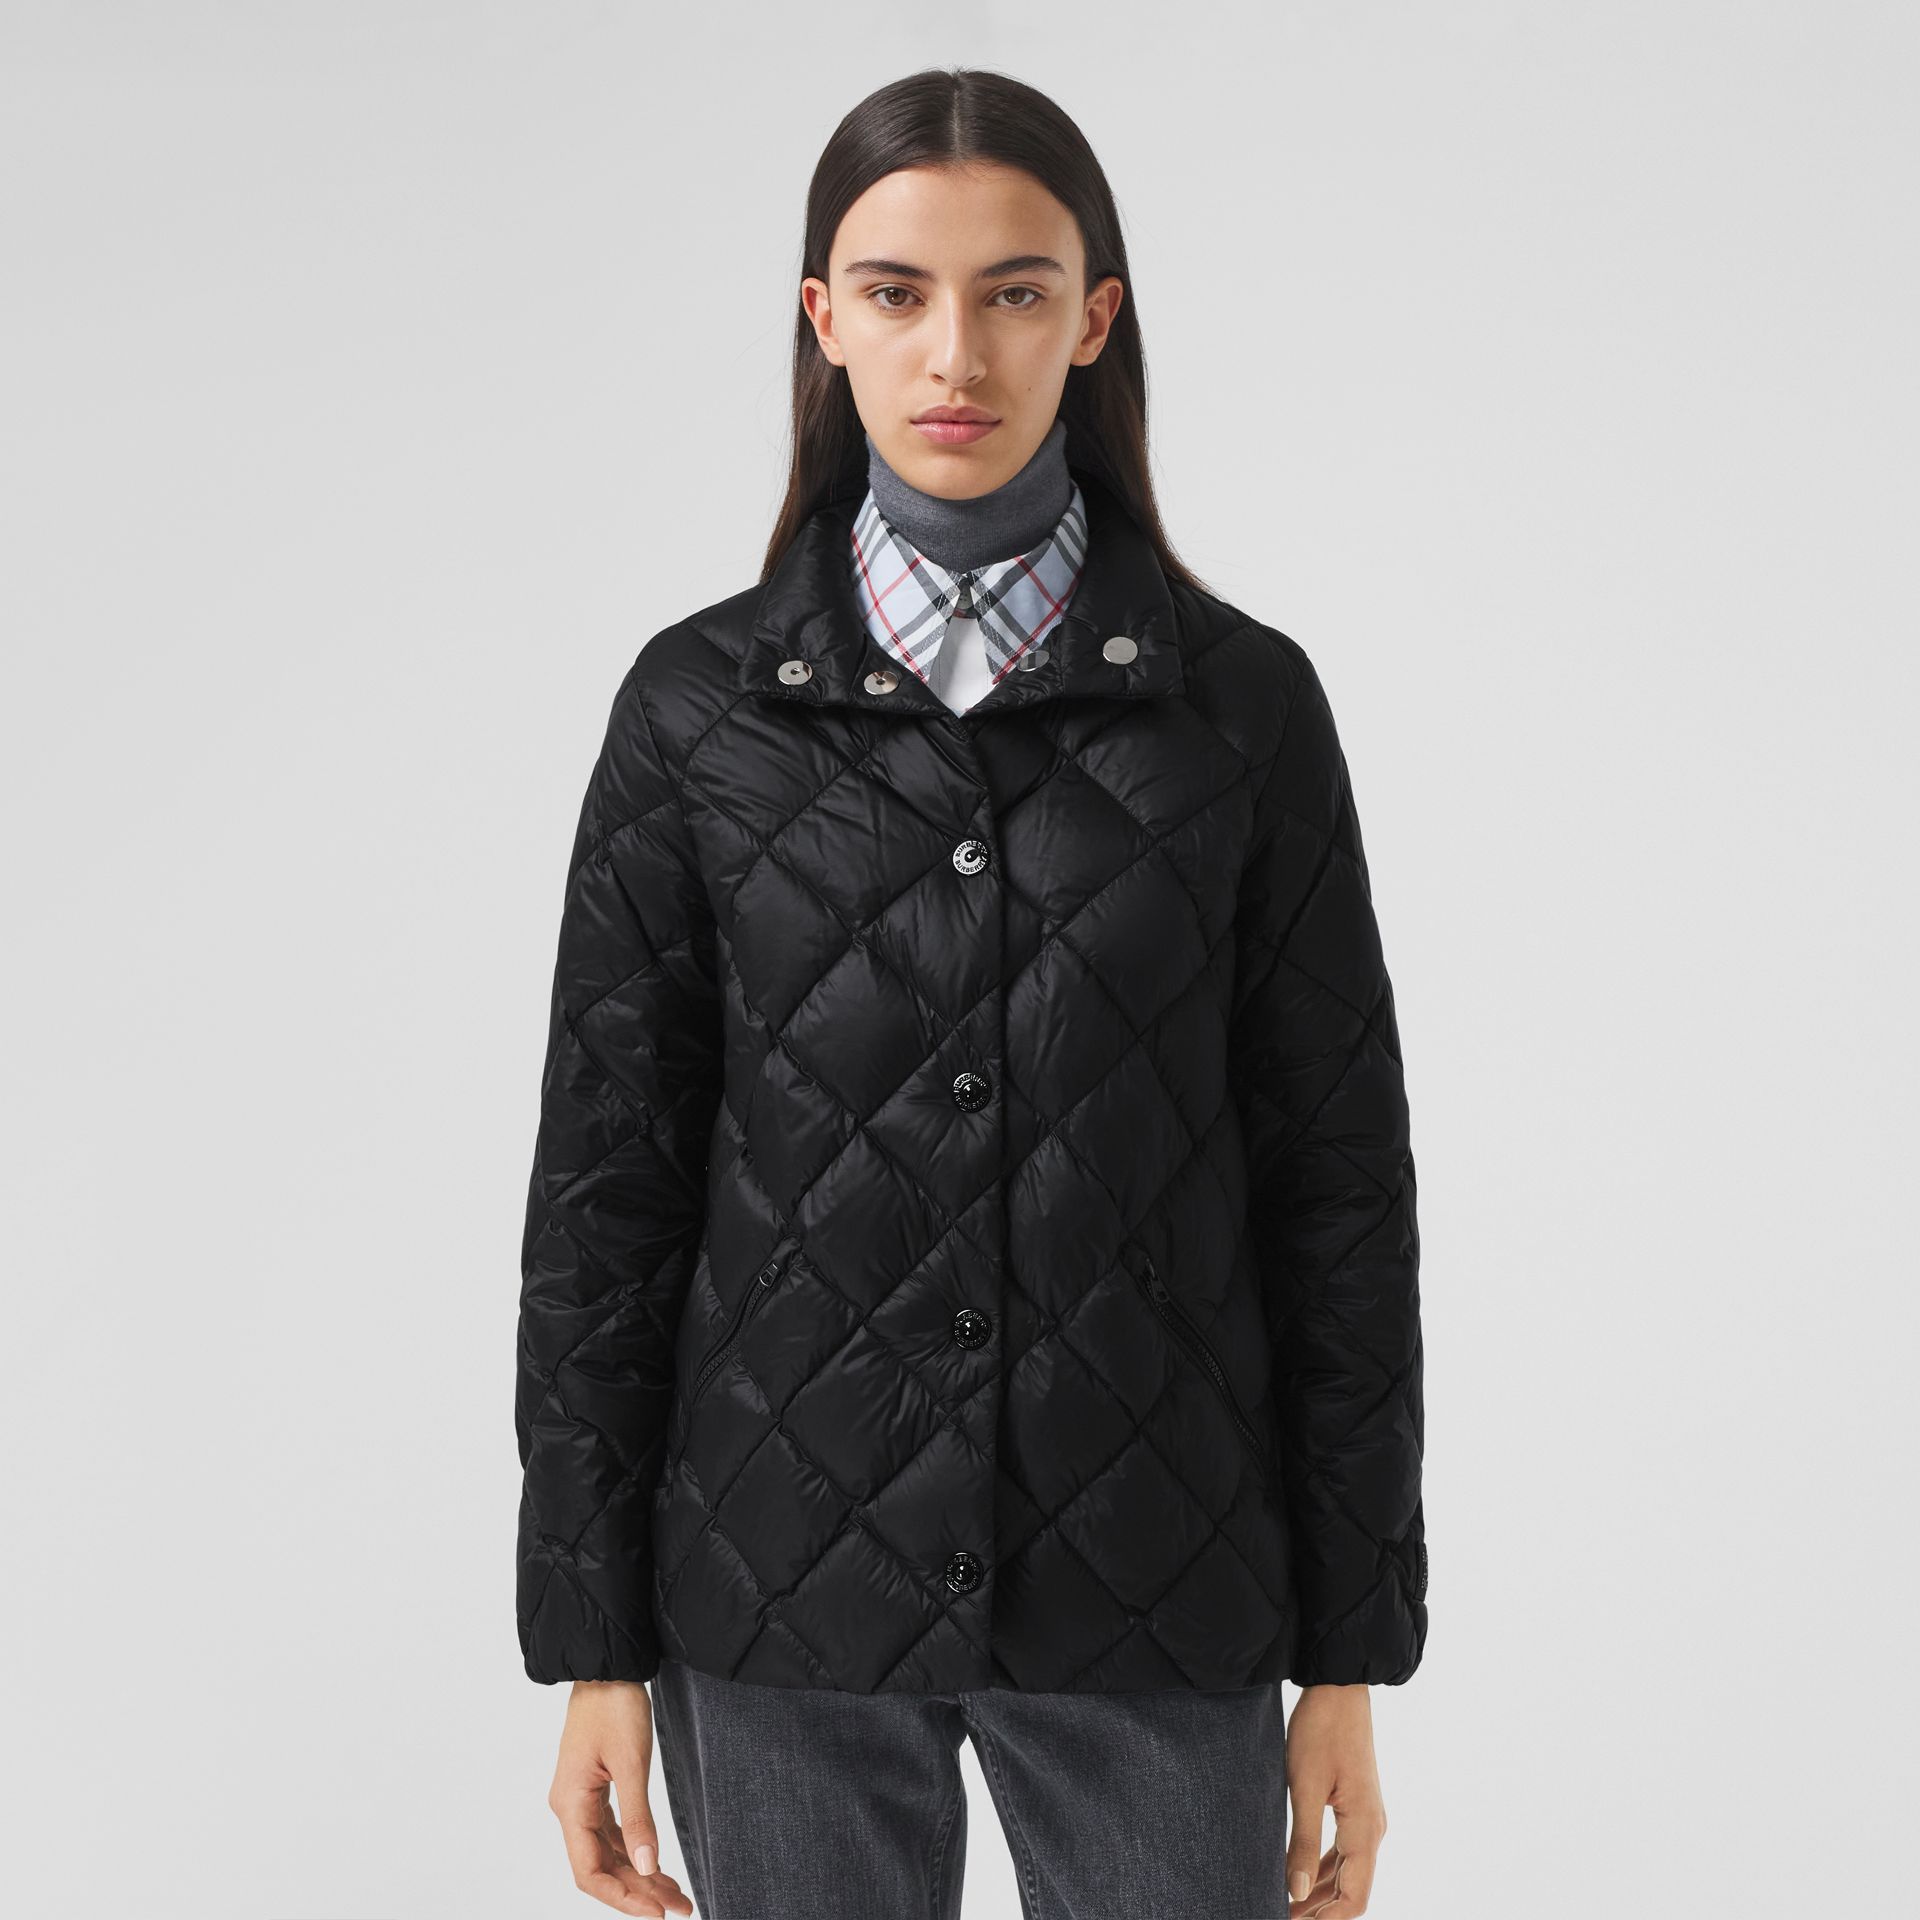 Diamond Quilted Down-filled Jacket in Black - Women | Burberry Canada - gallery image 5